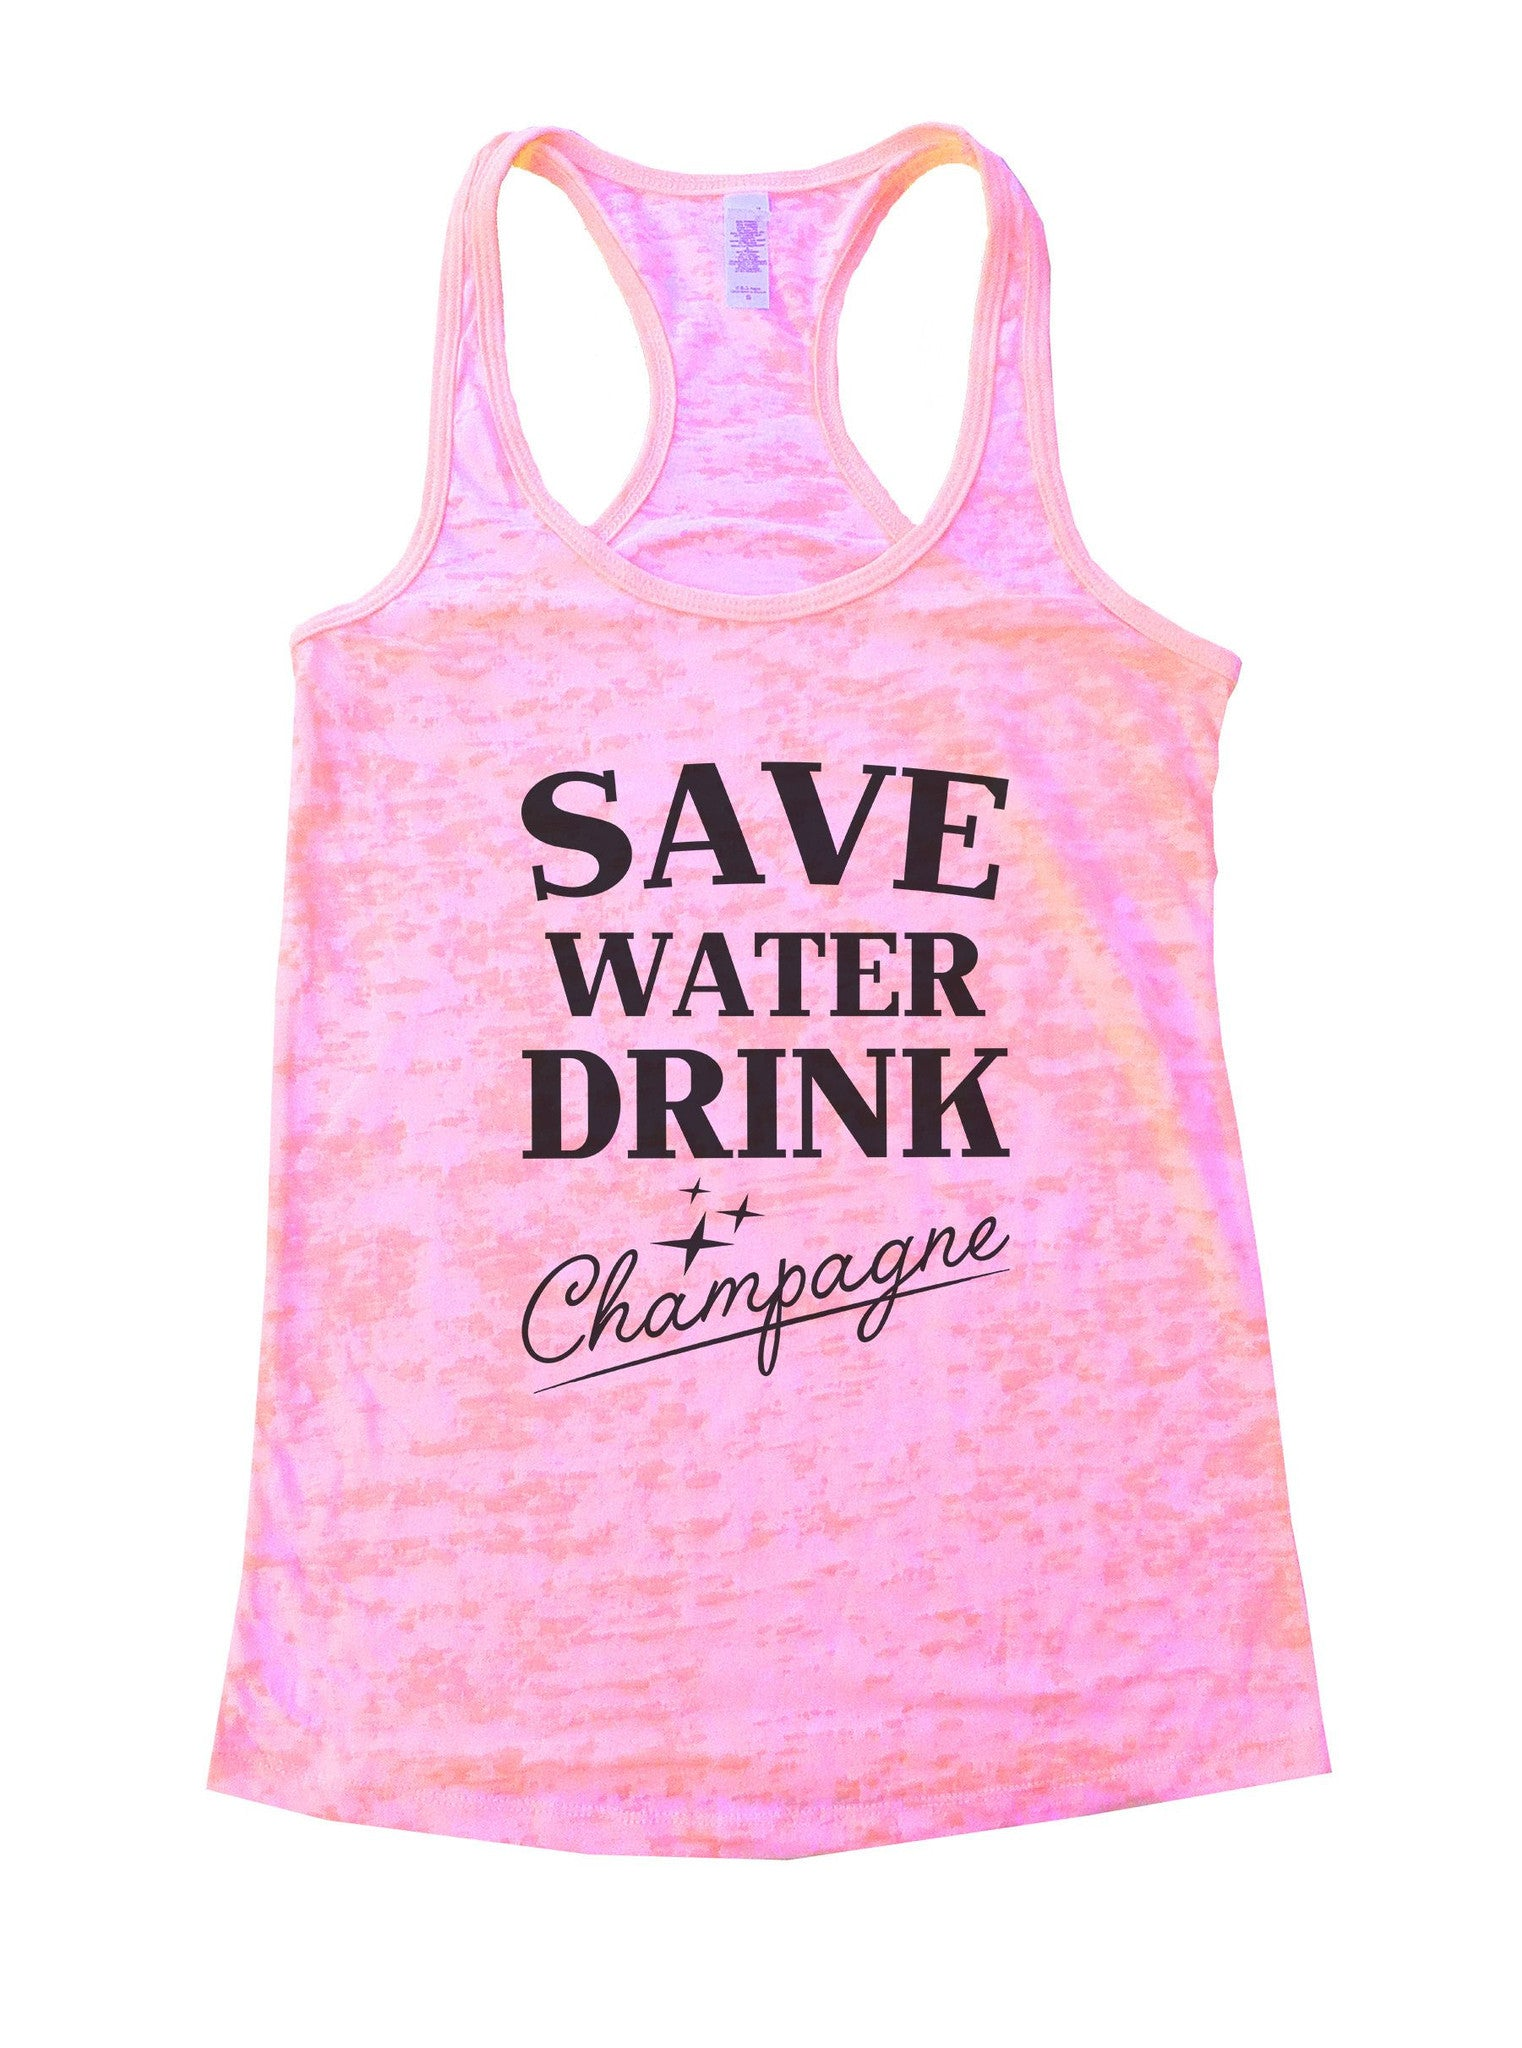 Save Water Dring Champagne Burnout Tank Top By BurnoutTankTops.com - 1009 - Funny Shirts Tank Tops Burnouts and Triblends  - 2